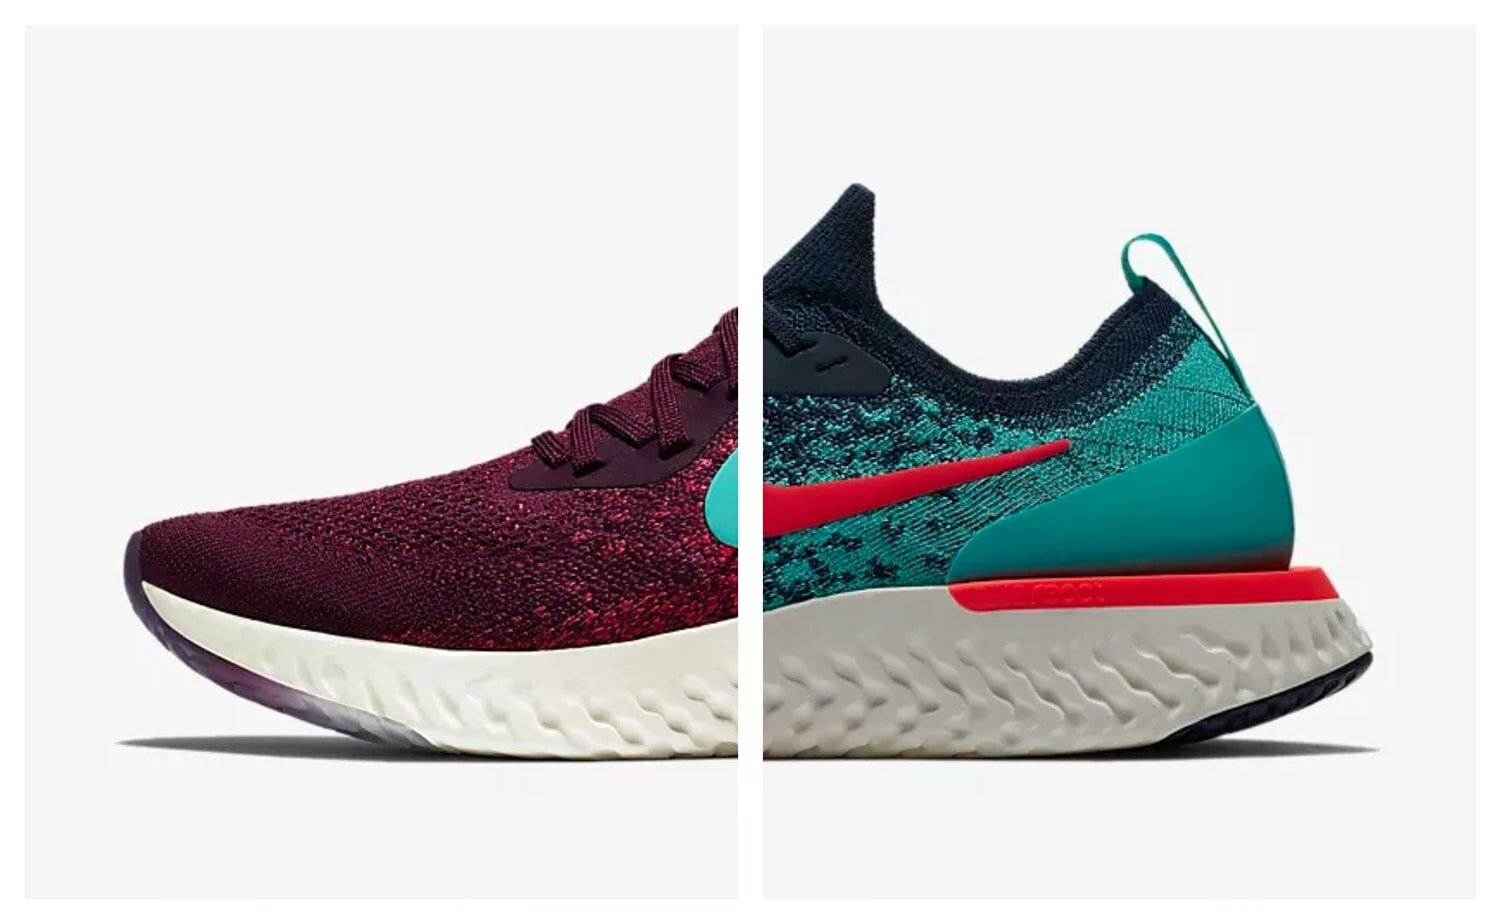 nike epico reagire flyknit luglio colorways disponibile justfreshkicks